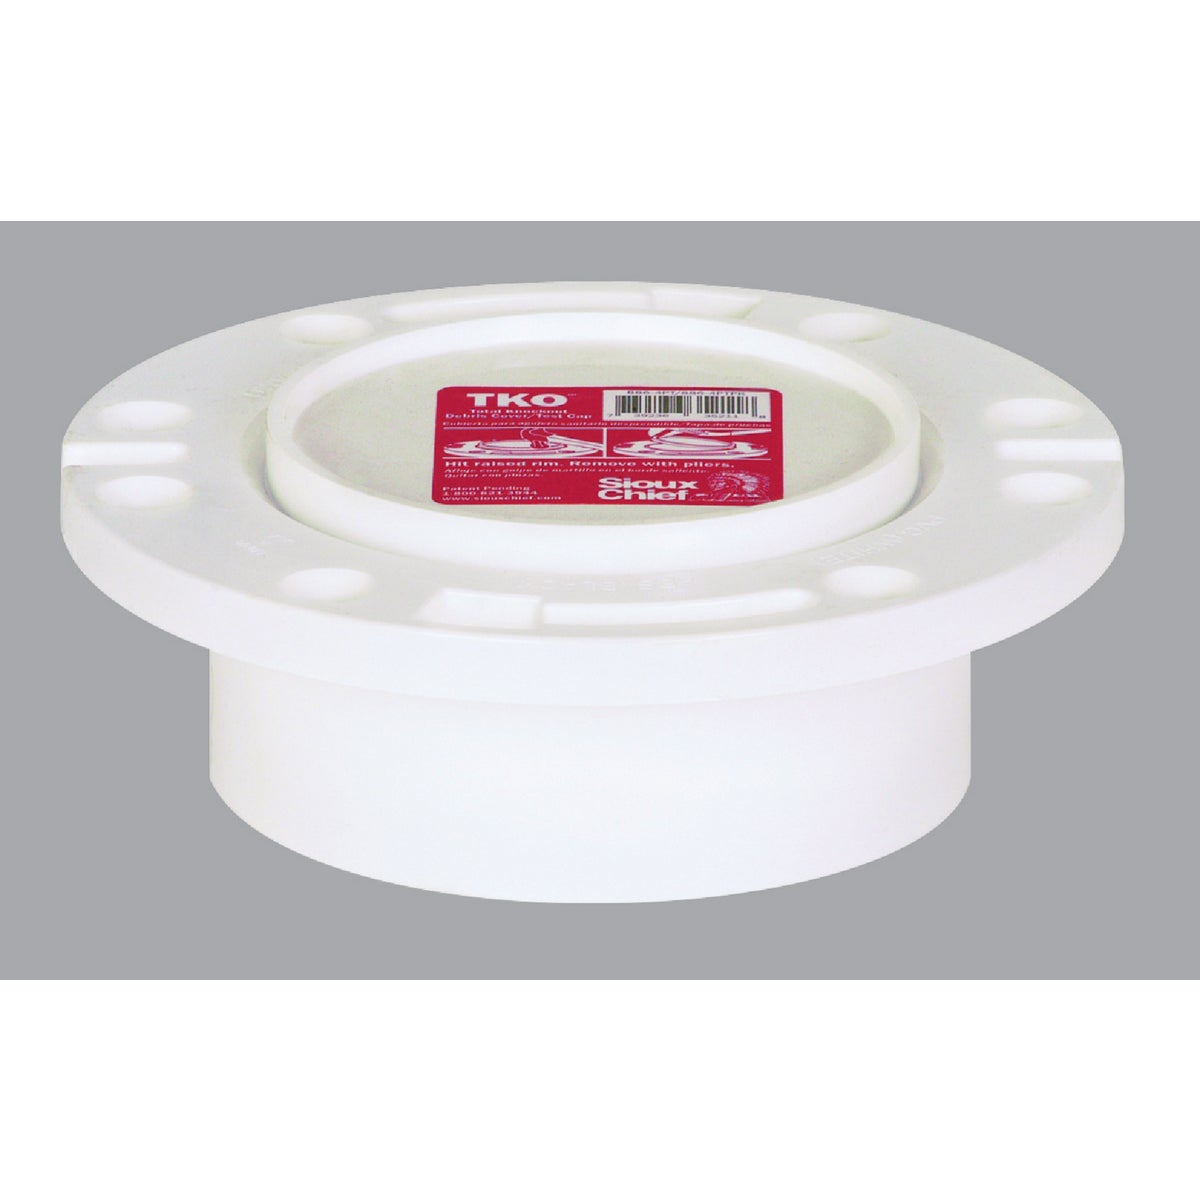 4X3 K/O PVC CLOST FLANGE - 883-PTPK by Sioux Chief Mfg